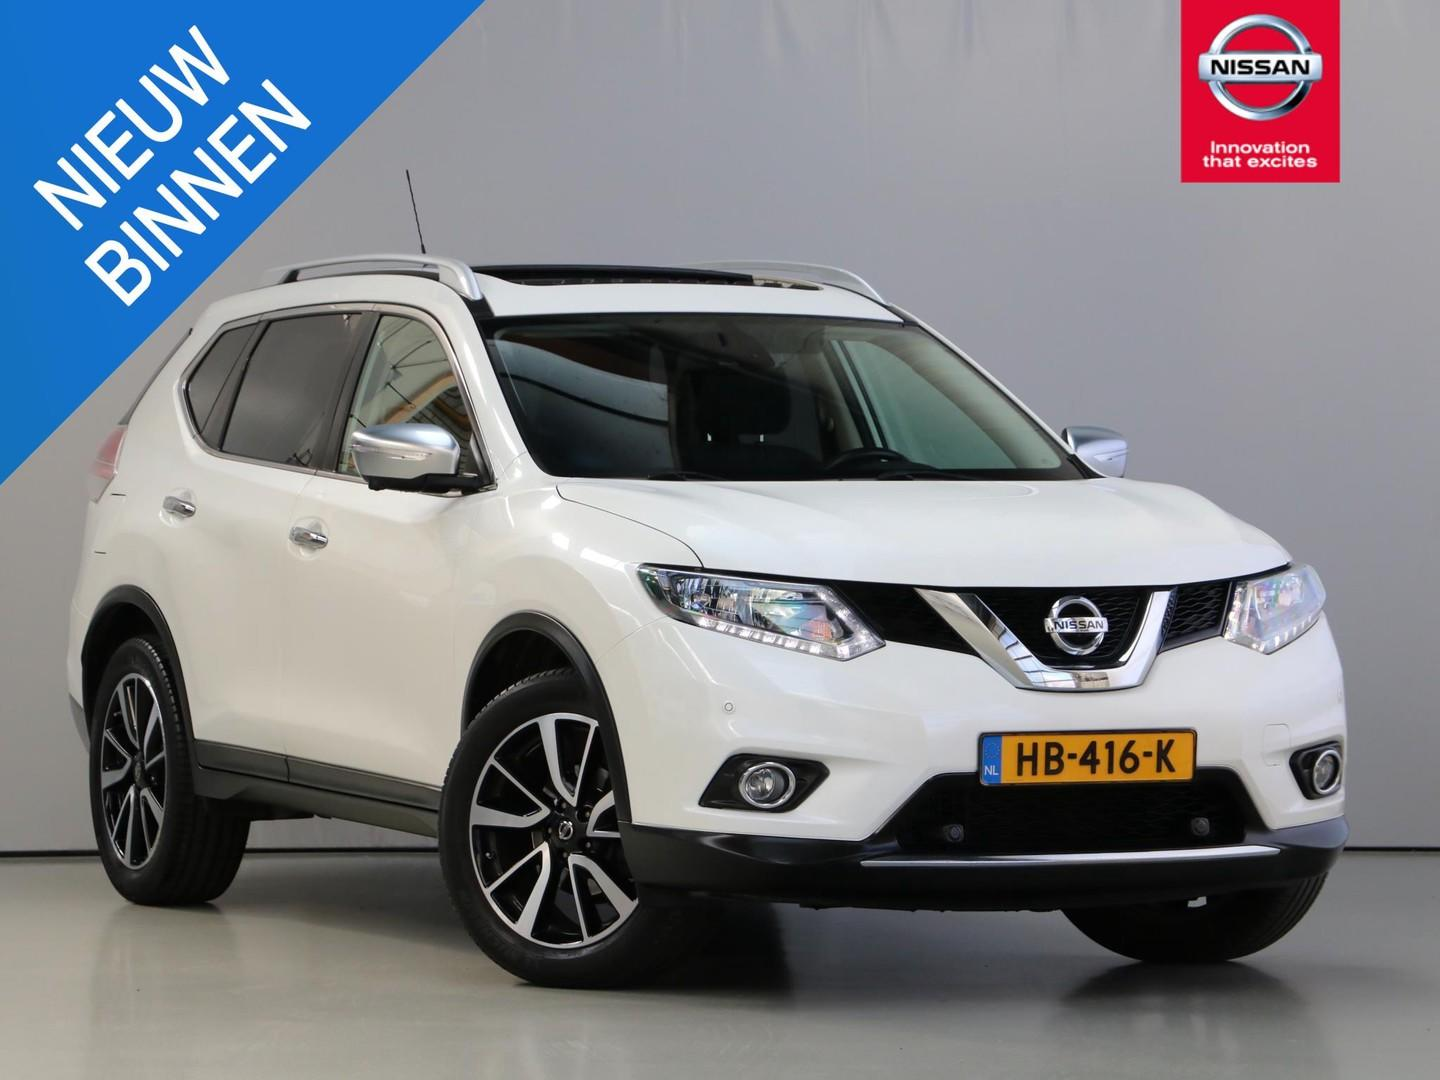 Nissan X-trail 1.6 dig-t 165pk connect edition